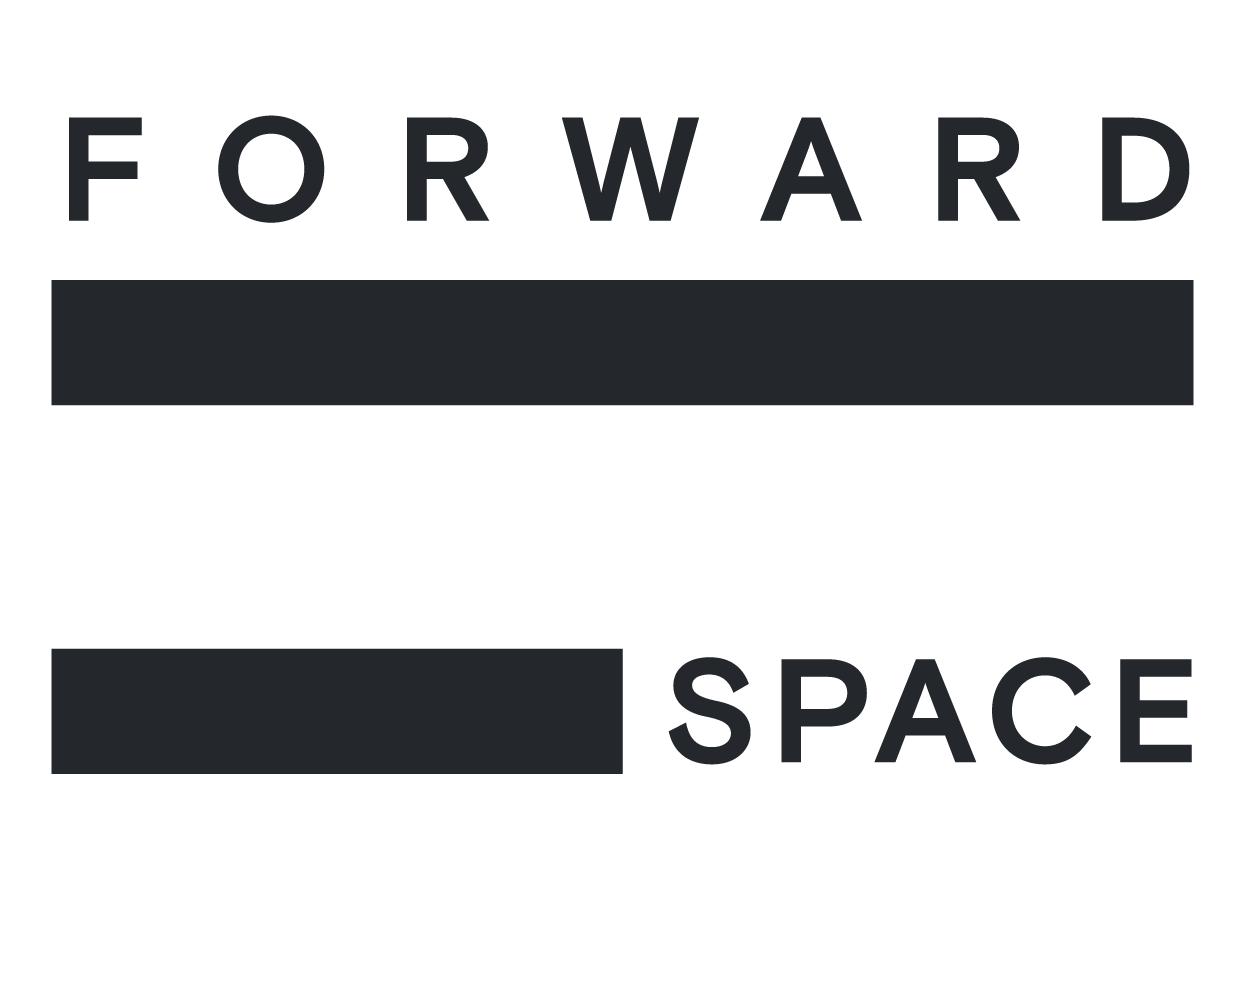 FORWARD_Space